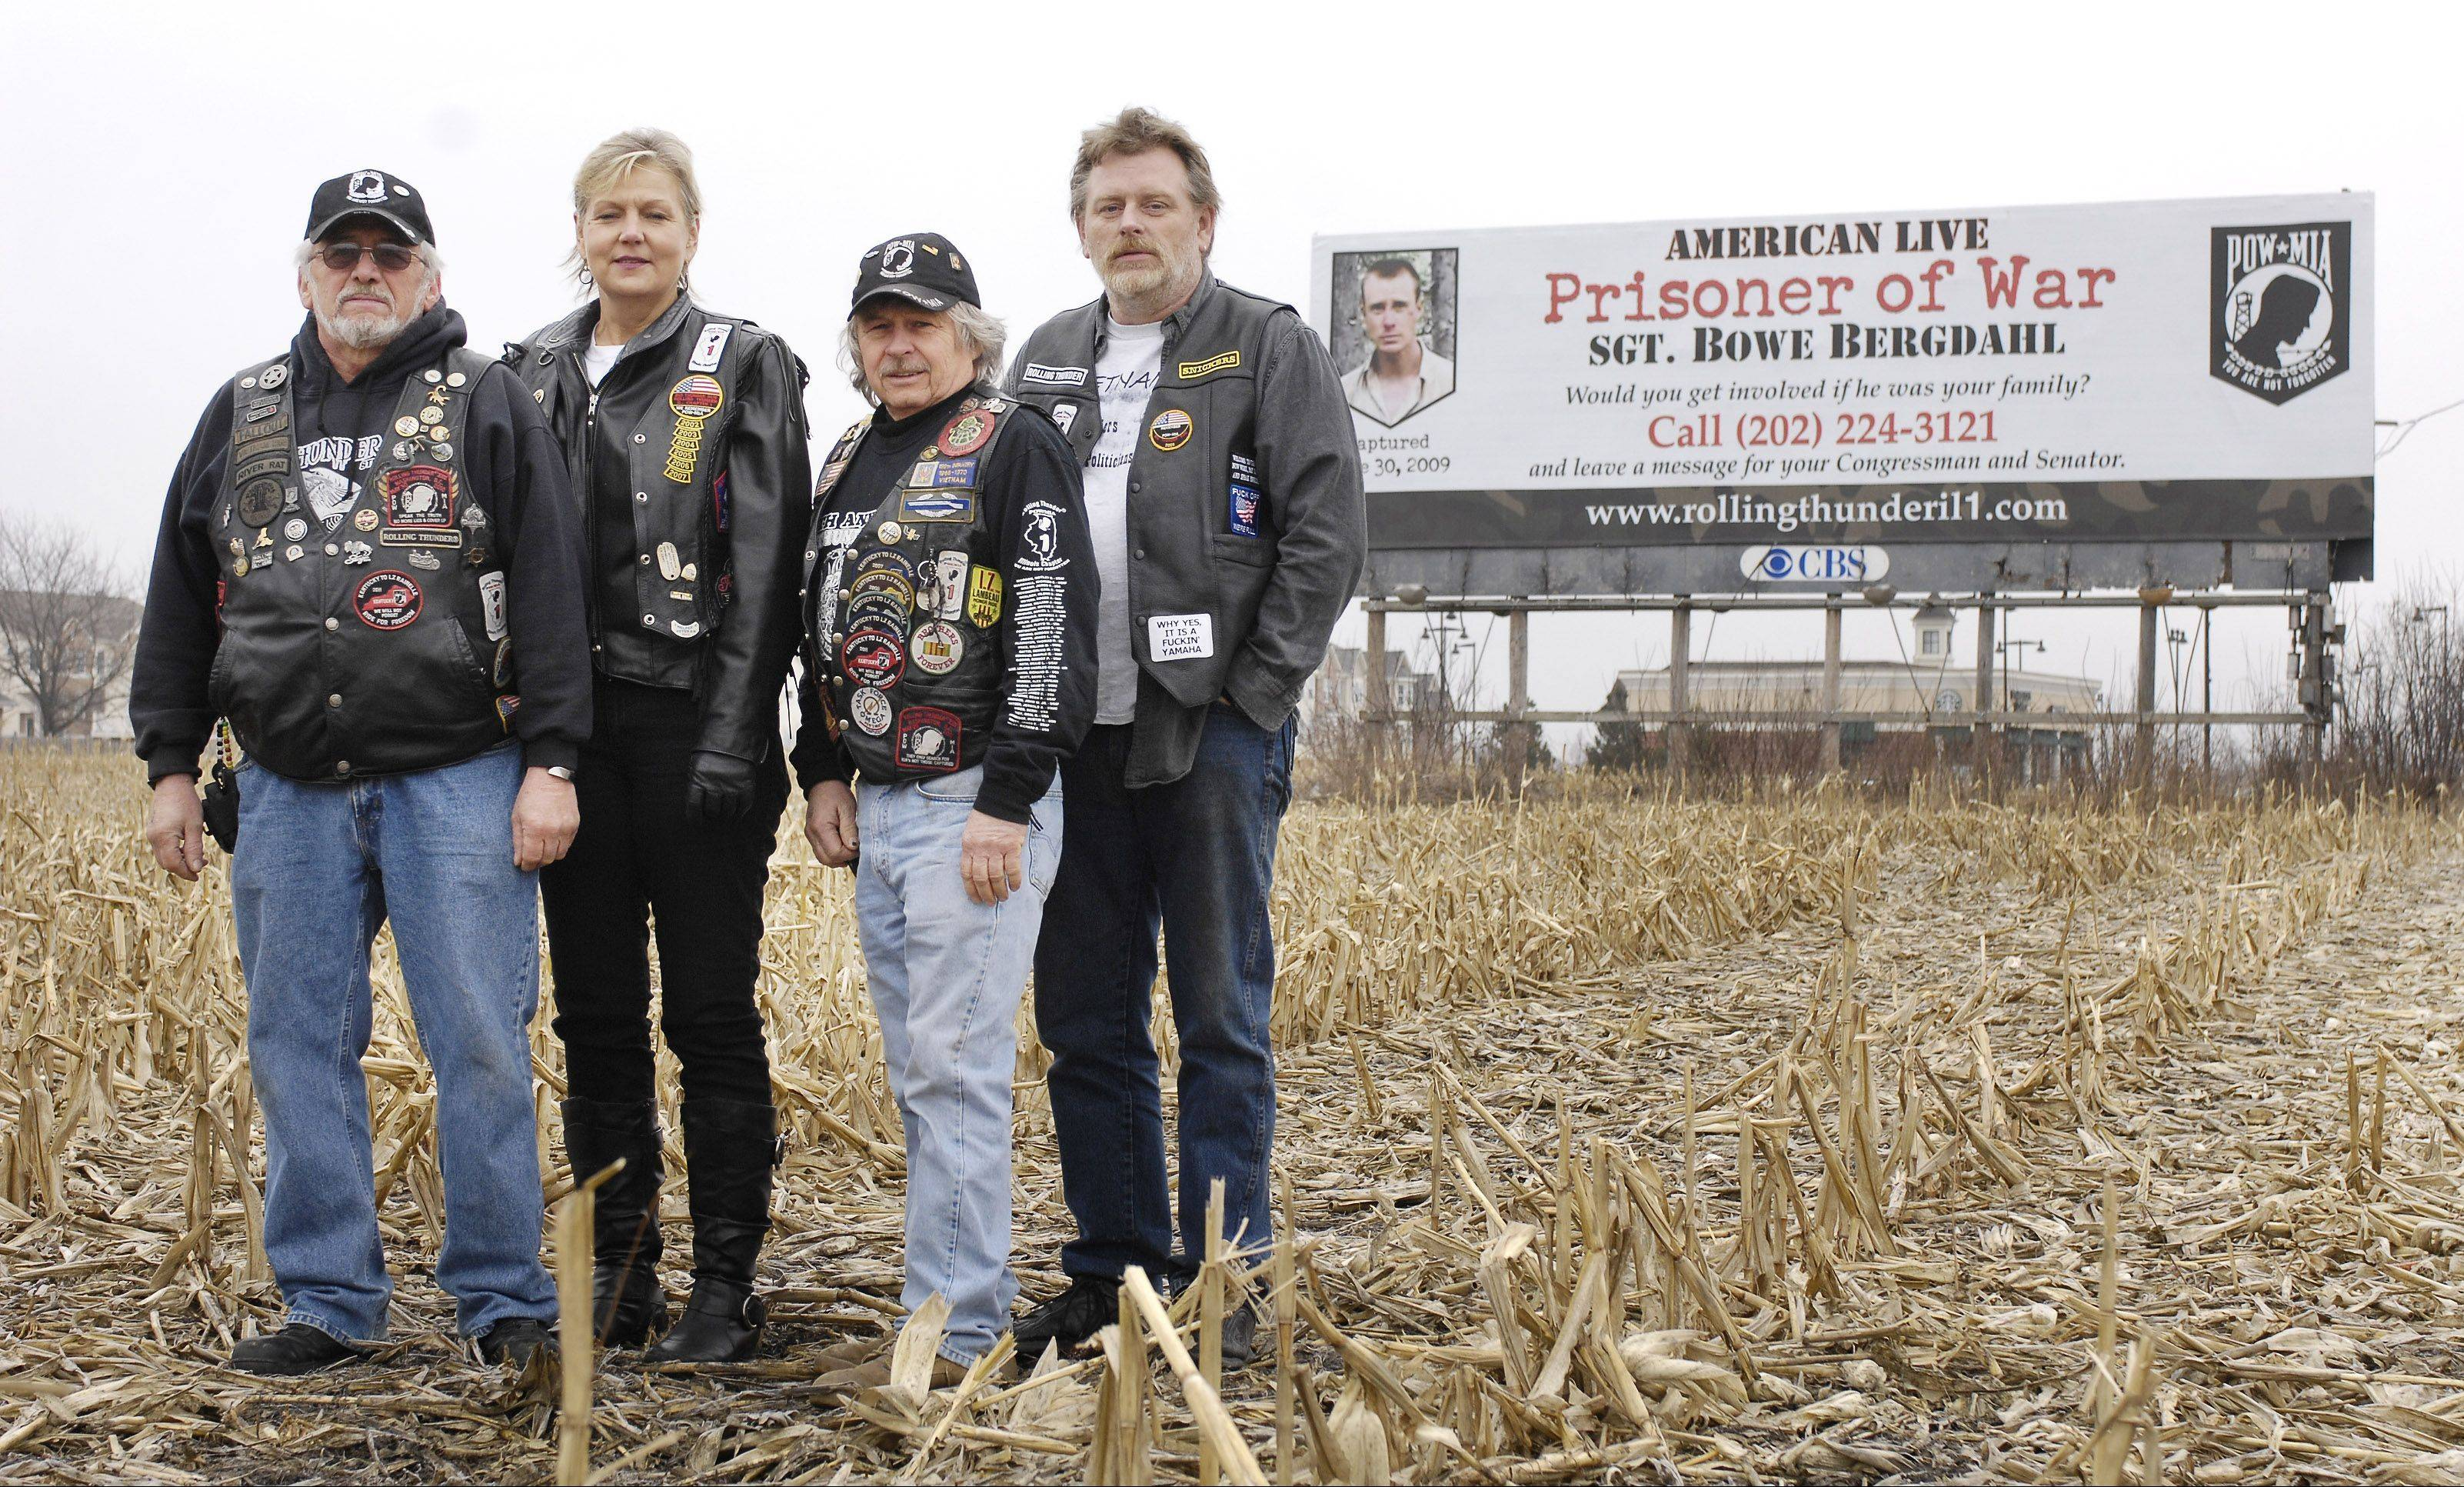 Bill Atkinson of Carol Stream, Ronda Mahar of Wheaton, Bill Sharpness of Kingston and Jim Slenk of Batavia are members of Rolling Thunder Chapter 1, a veterans group that rented three billboards, including one in Hanover Park, to call attention to the plight of American POW Sgt. Bowe Bergdahl.